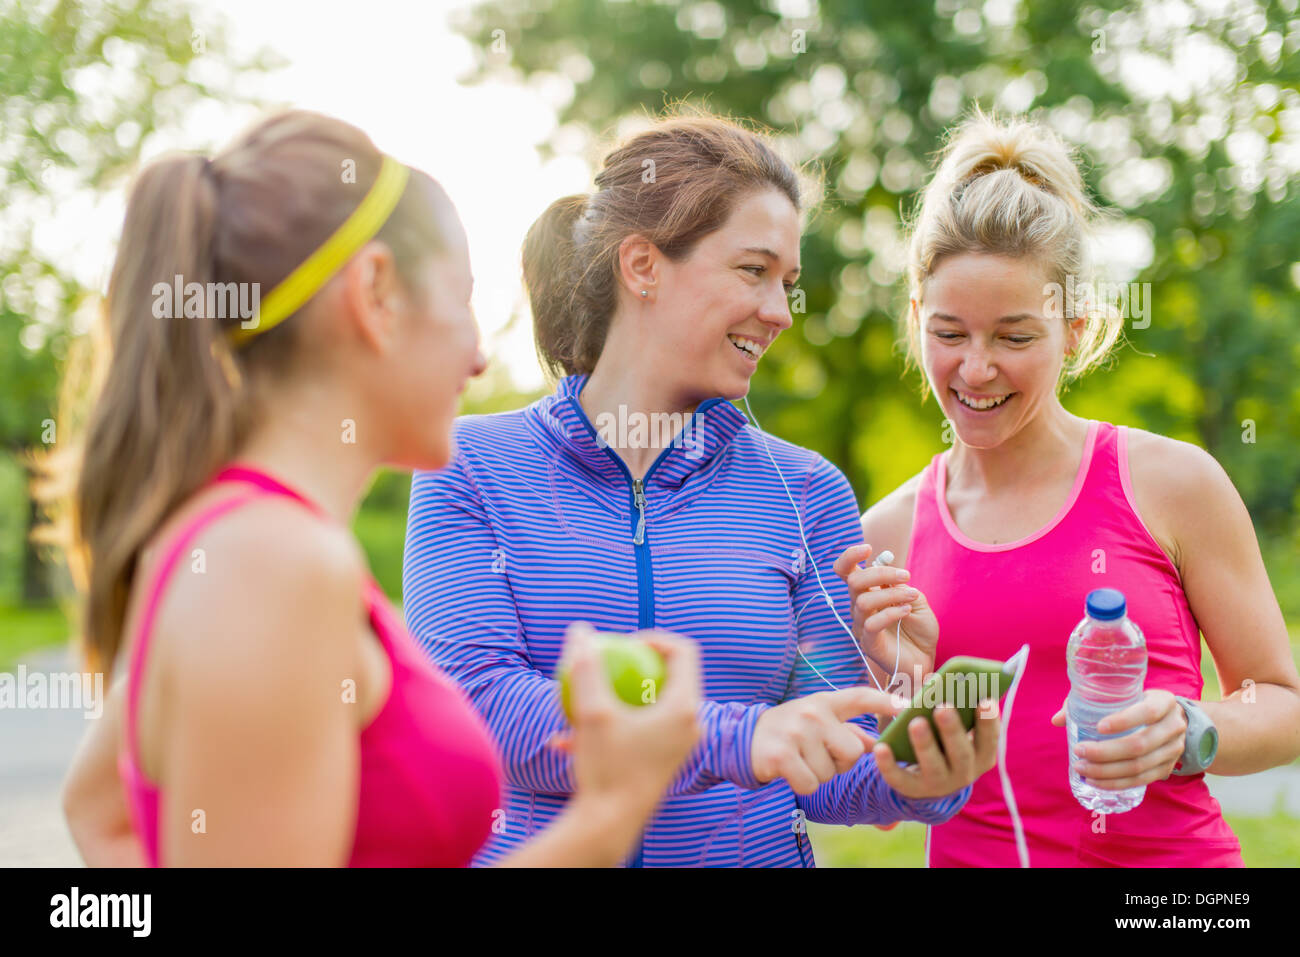 Group of happy active girls preparing for a run in nature by choosing music on a smart phone - Stock Image